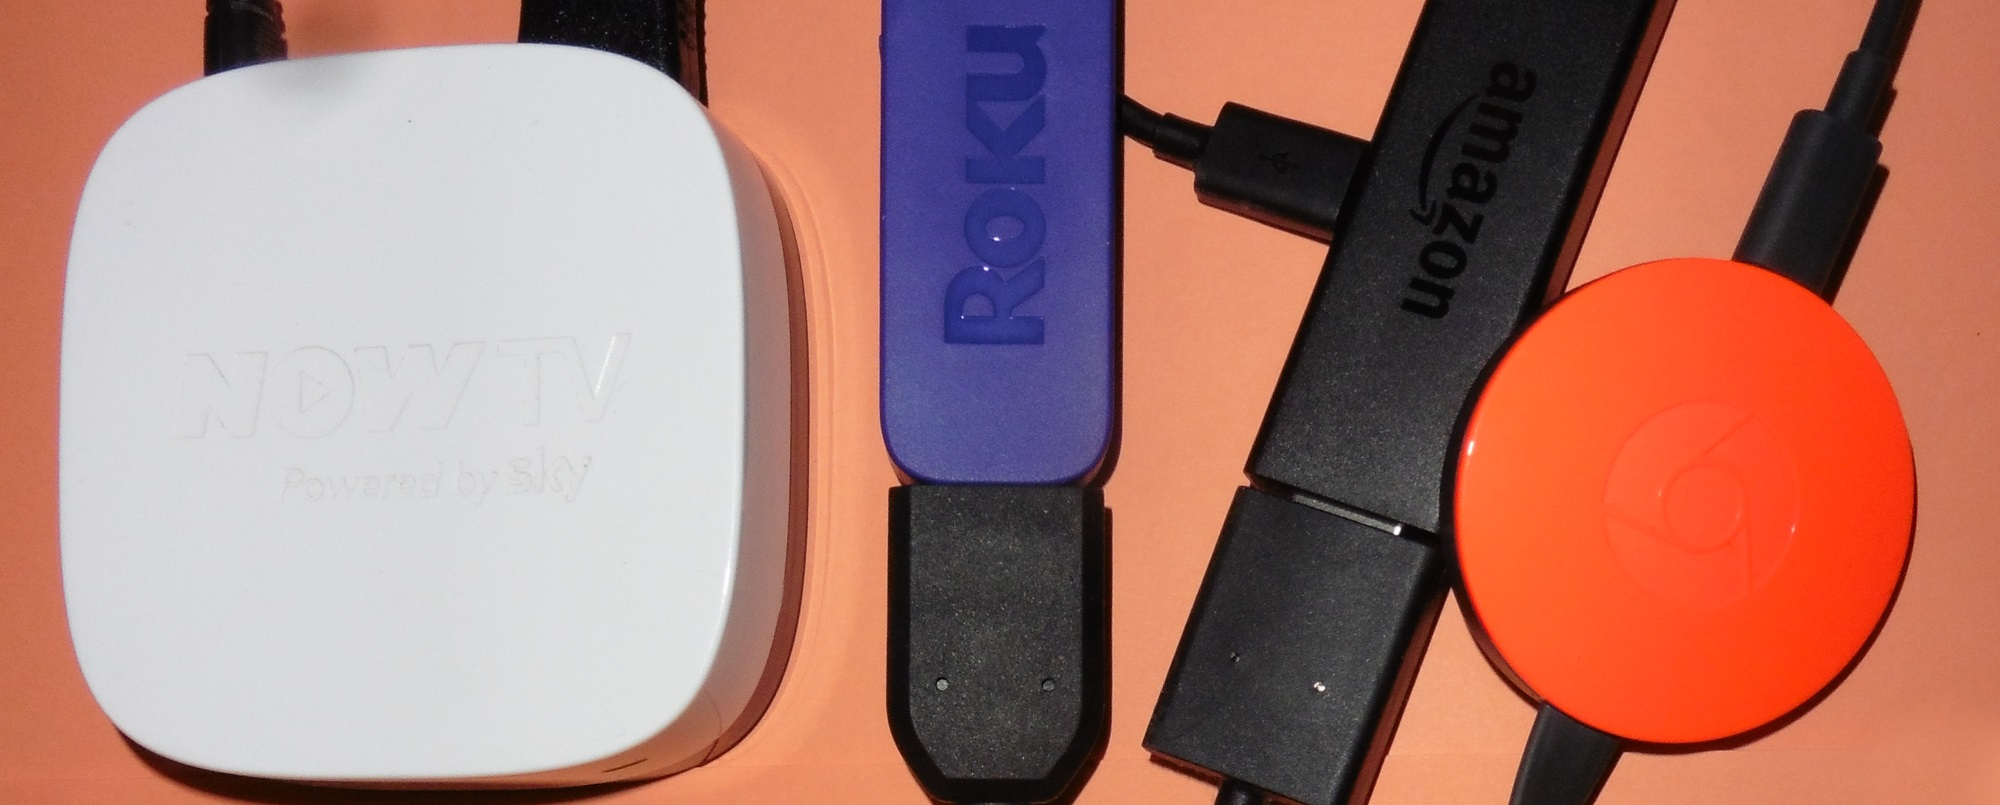 Streaming Sticks